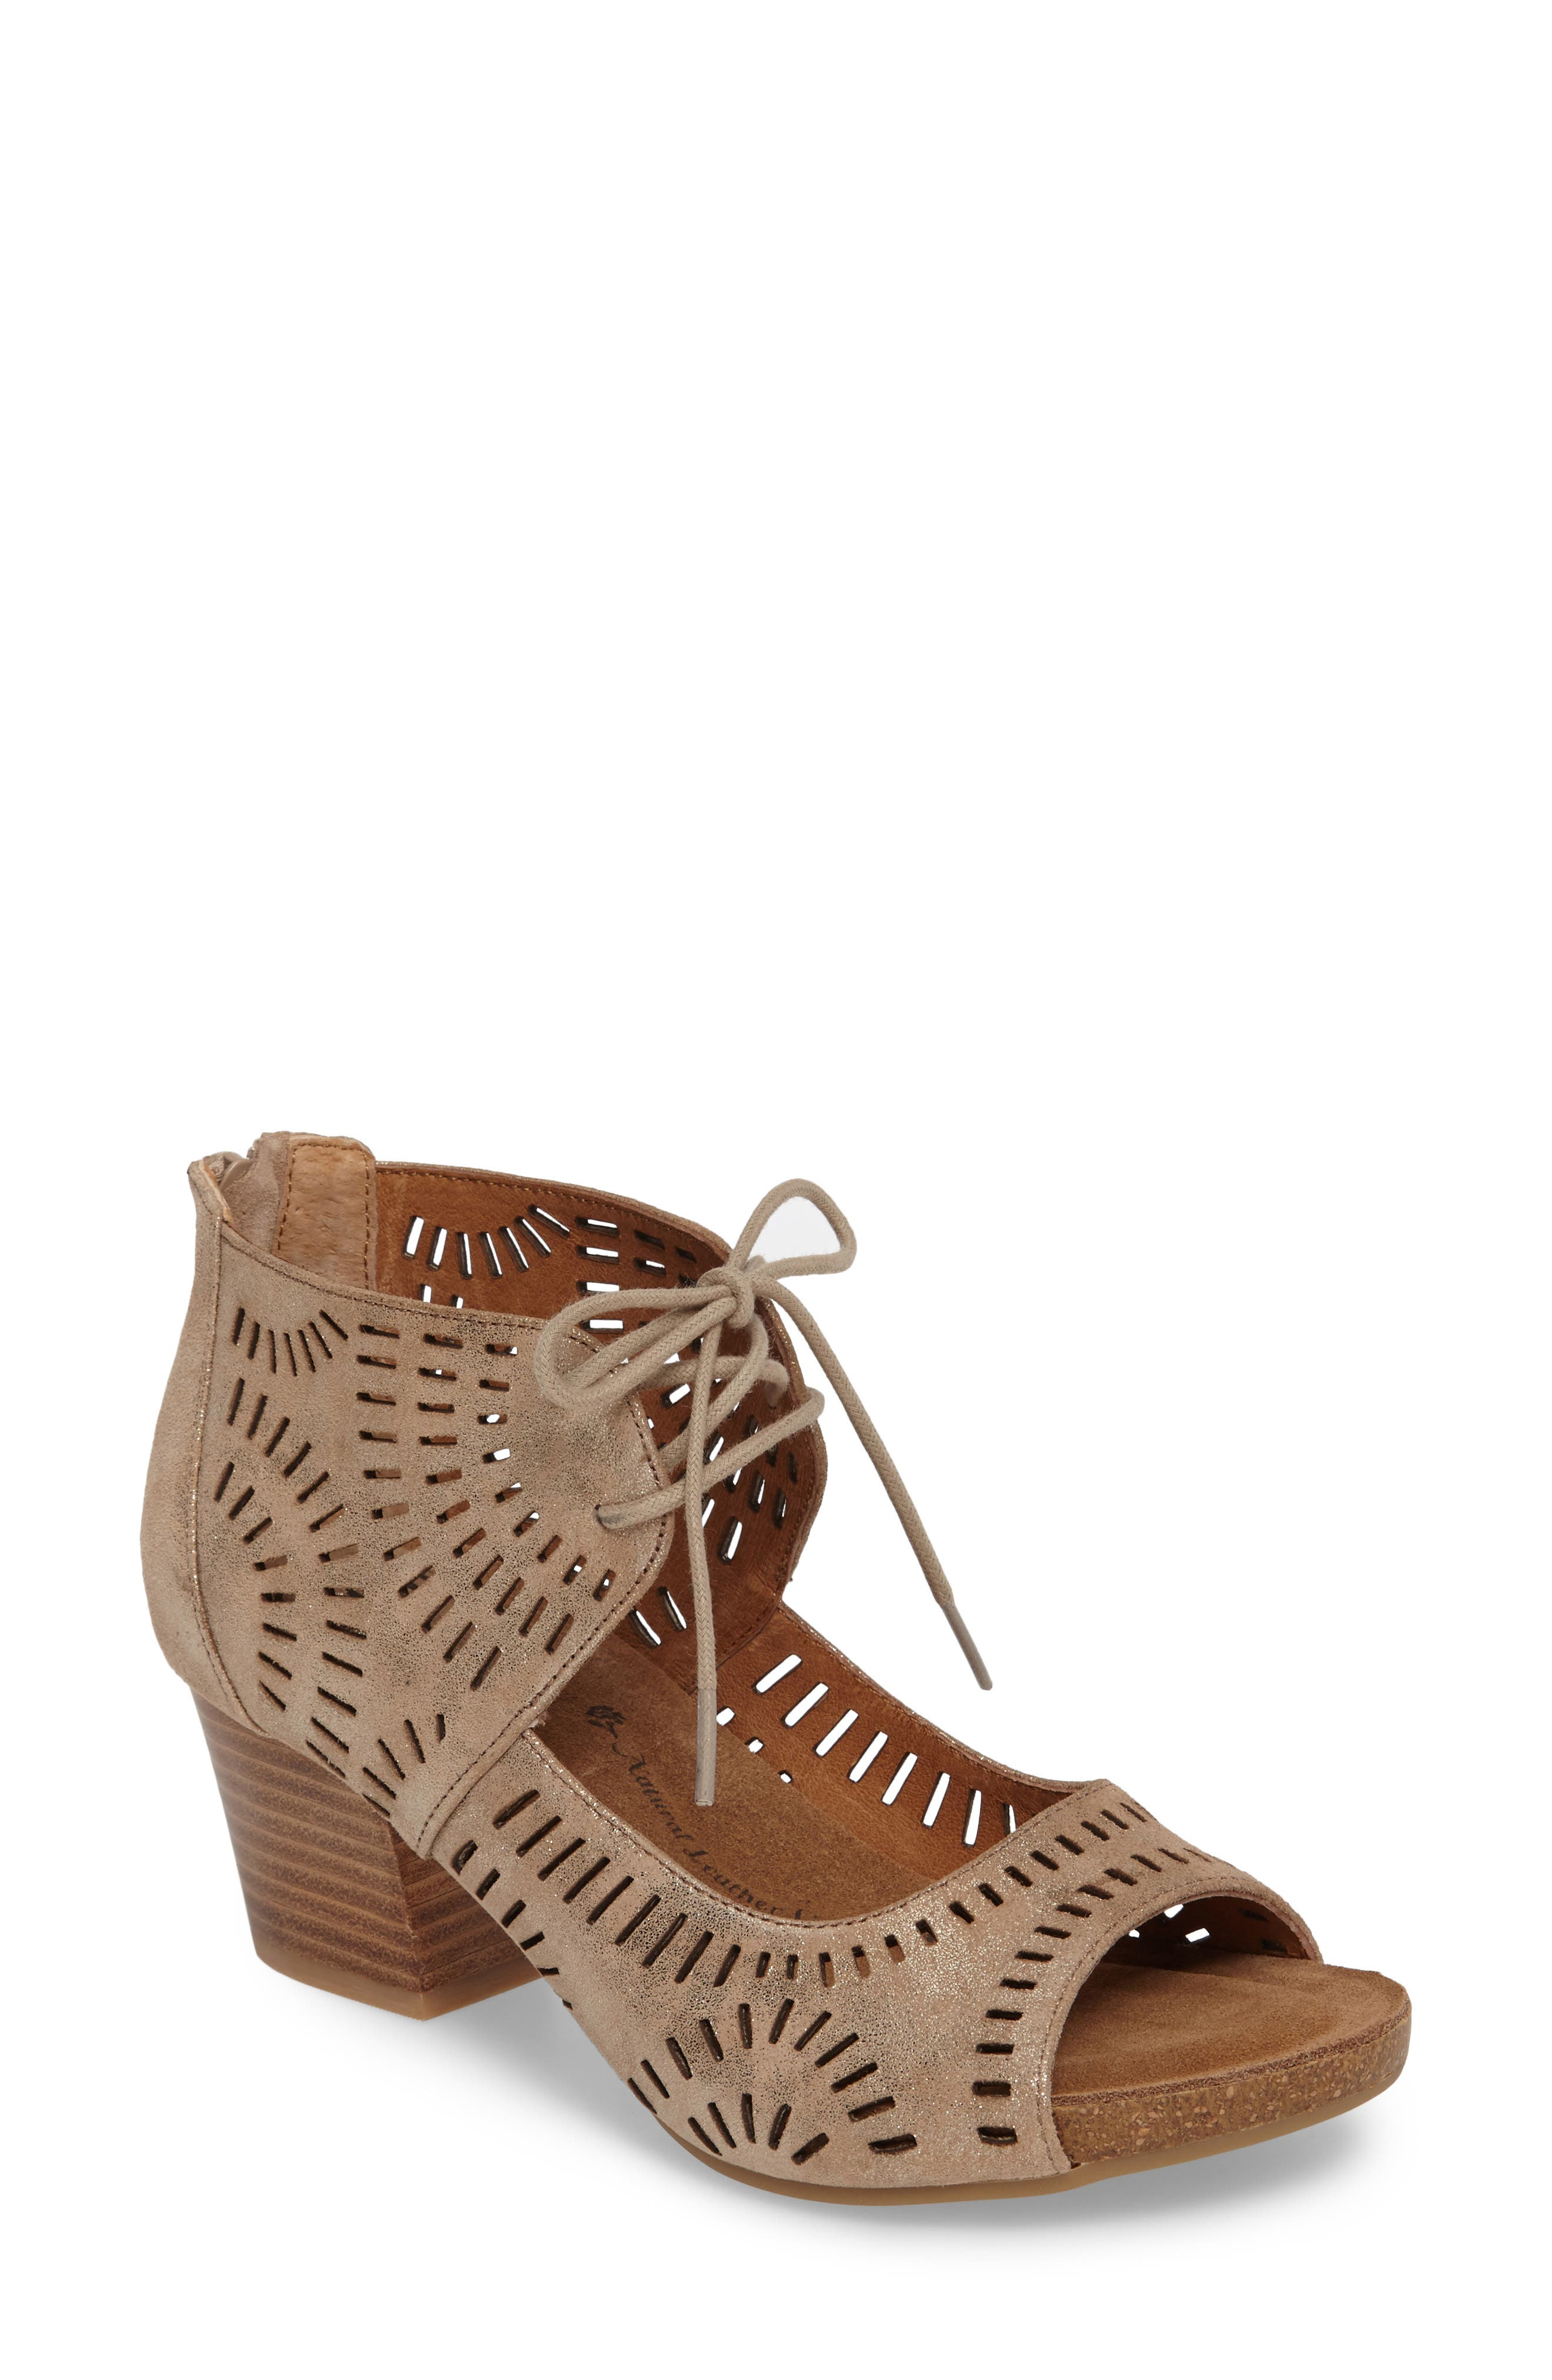 SÖFFT Modesto Perforated Sandal, Main, color, ANTHRACITE DISTRESSED FOIL